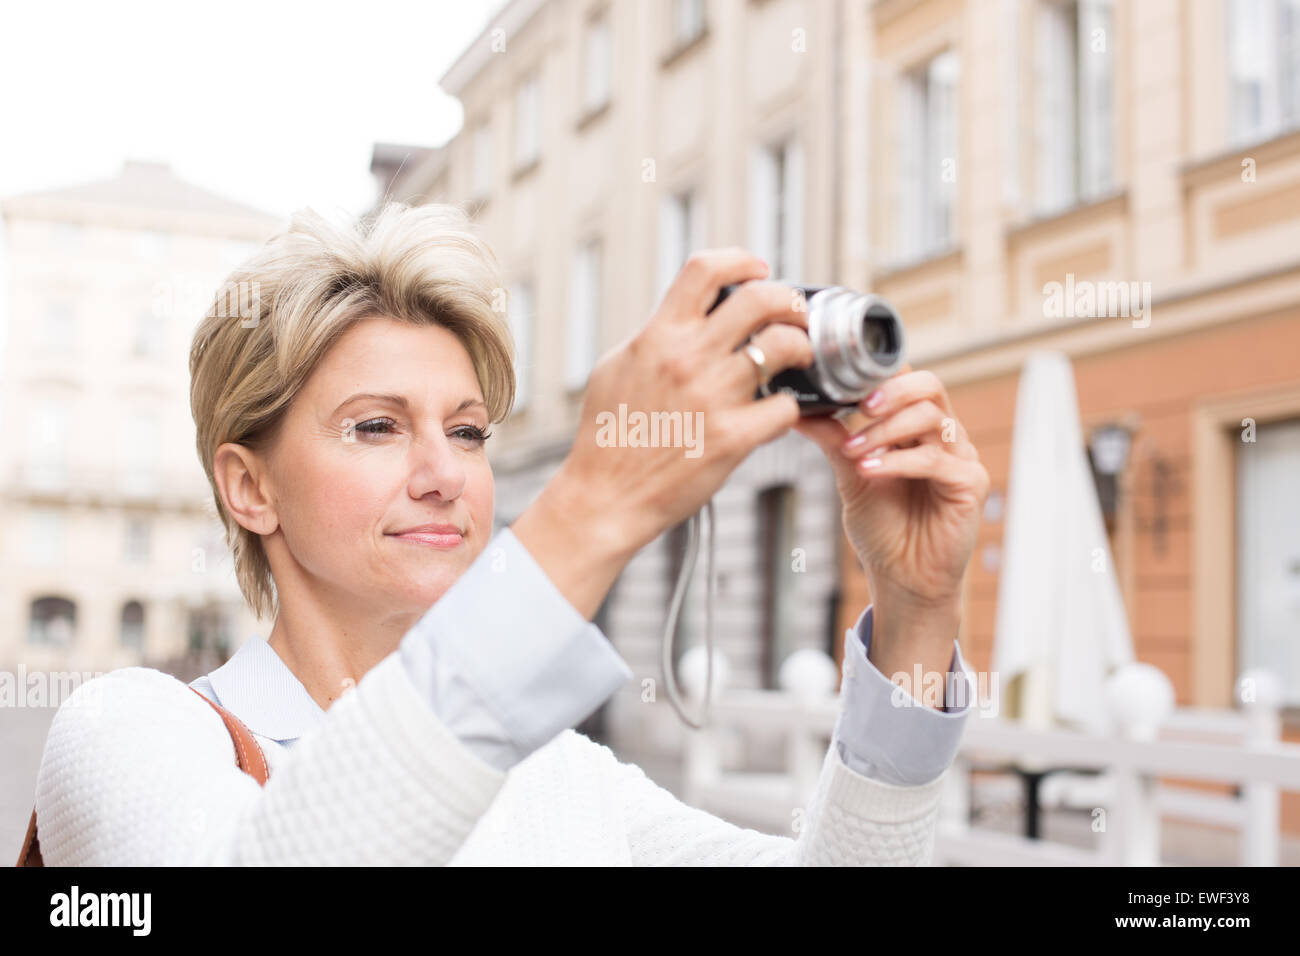 Woman photographing through digital camera in city - Stock Image